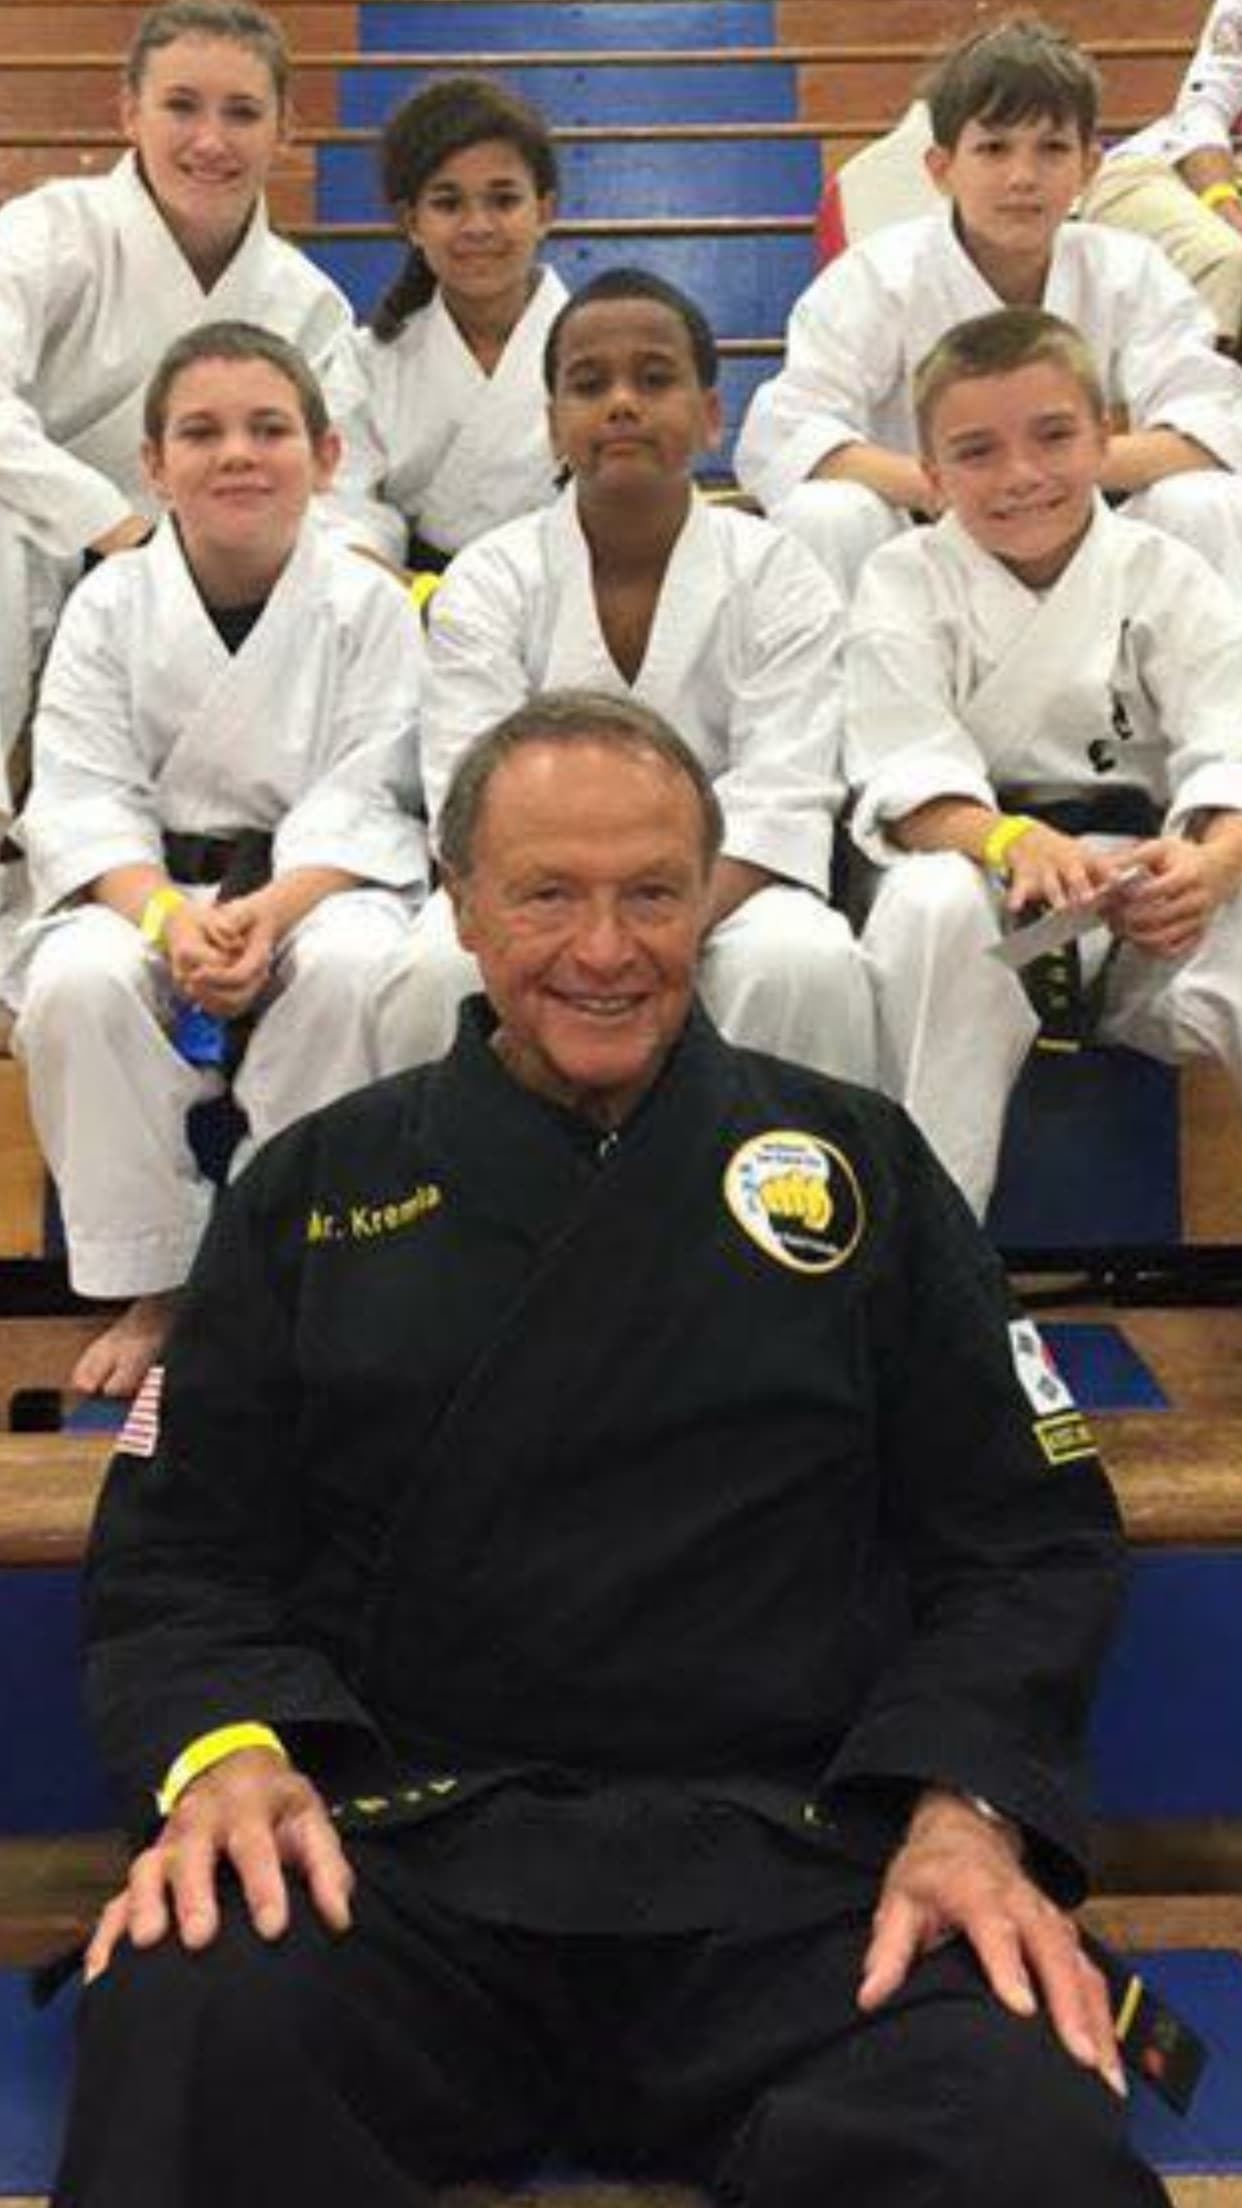 Mr. L. Kremla in Omaha - Championship Martial Arts - Omaha